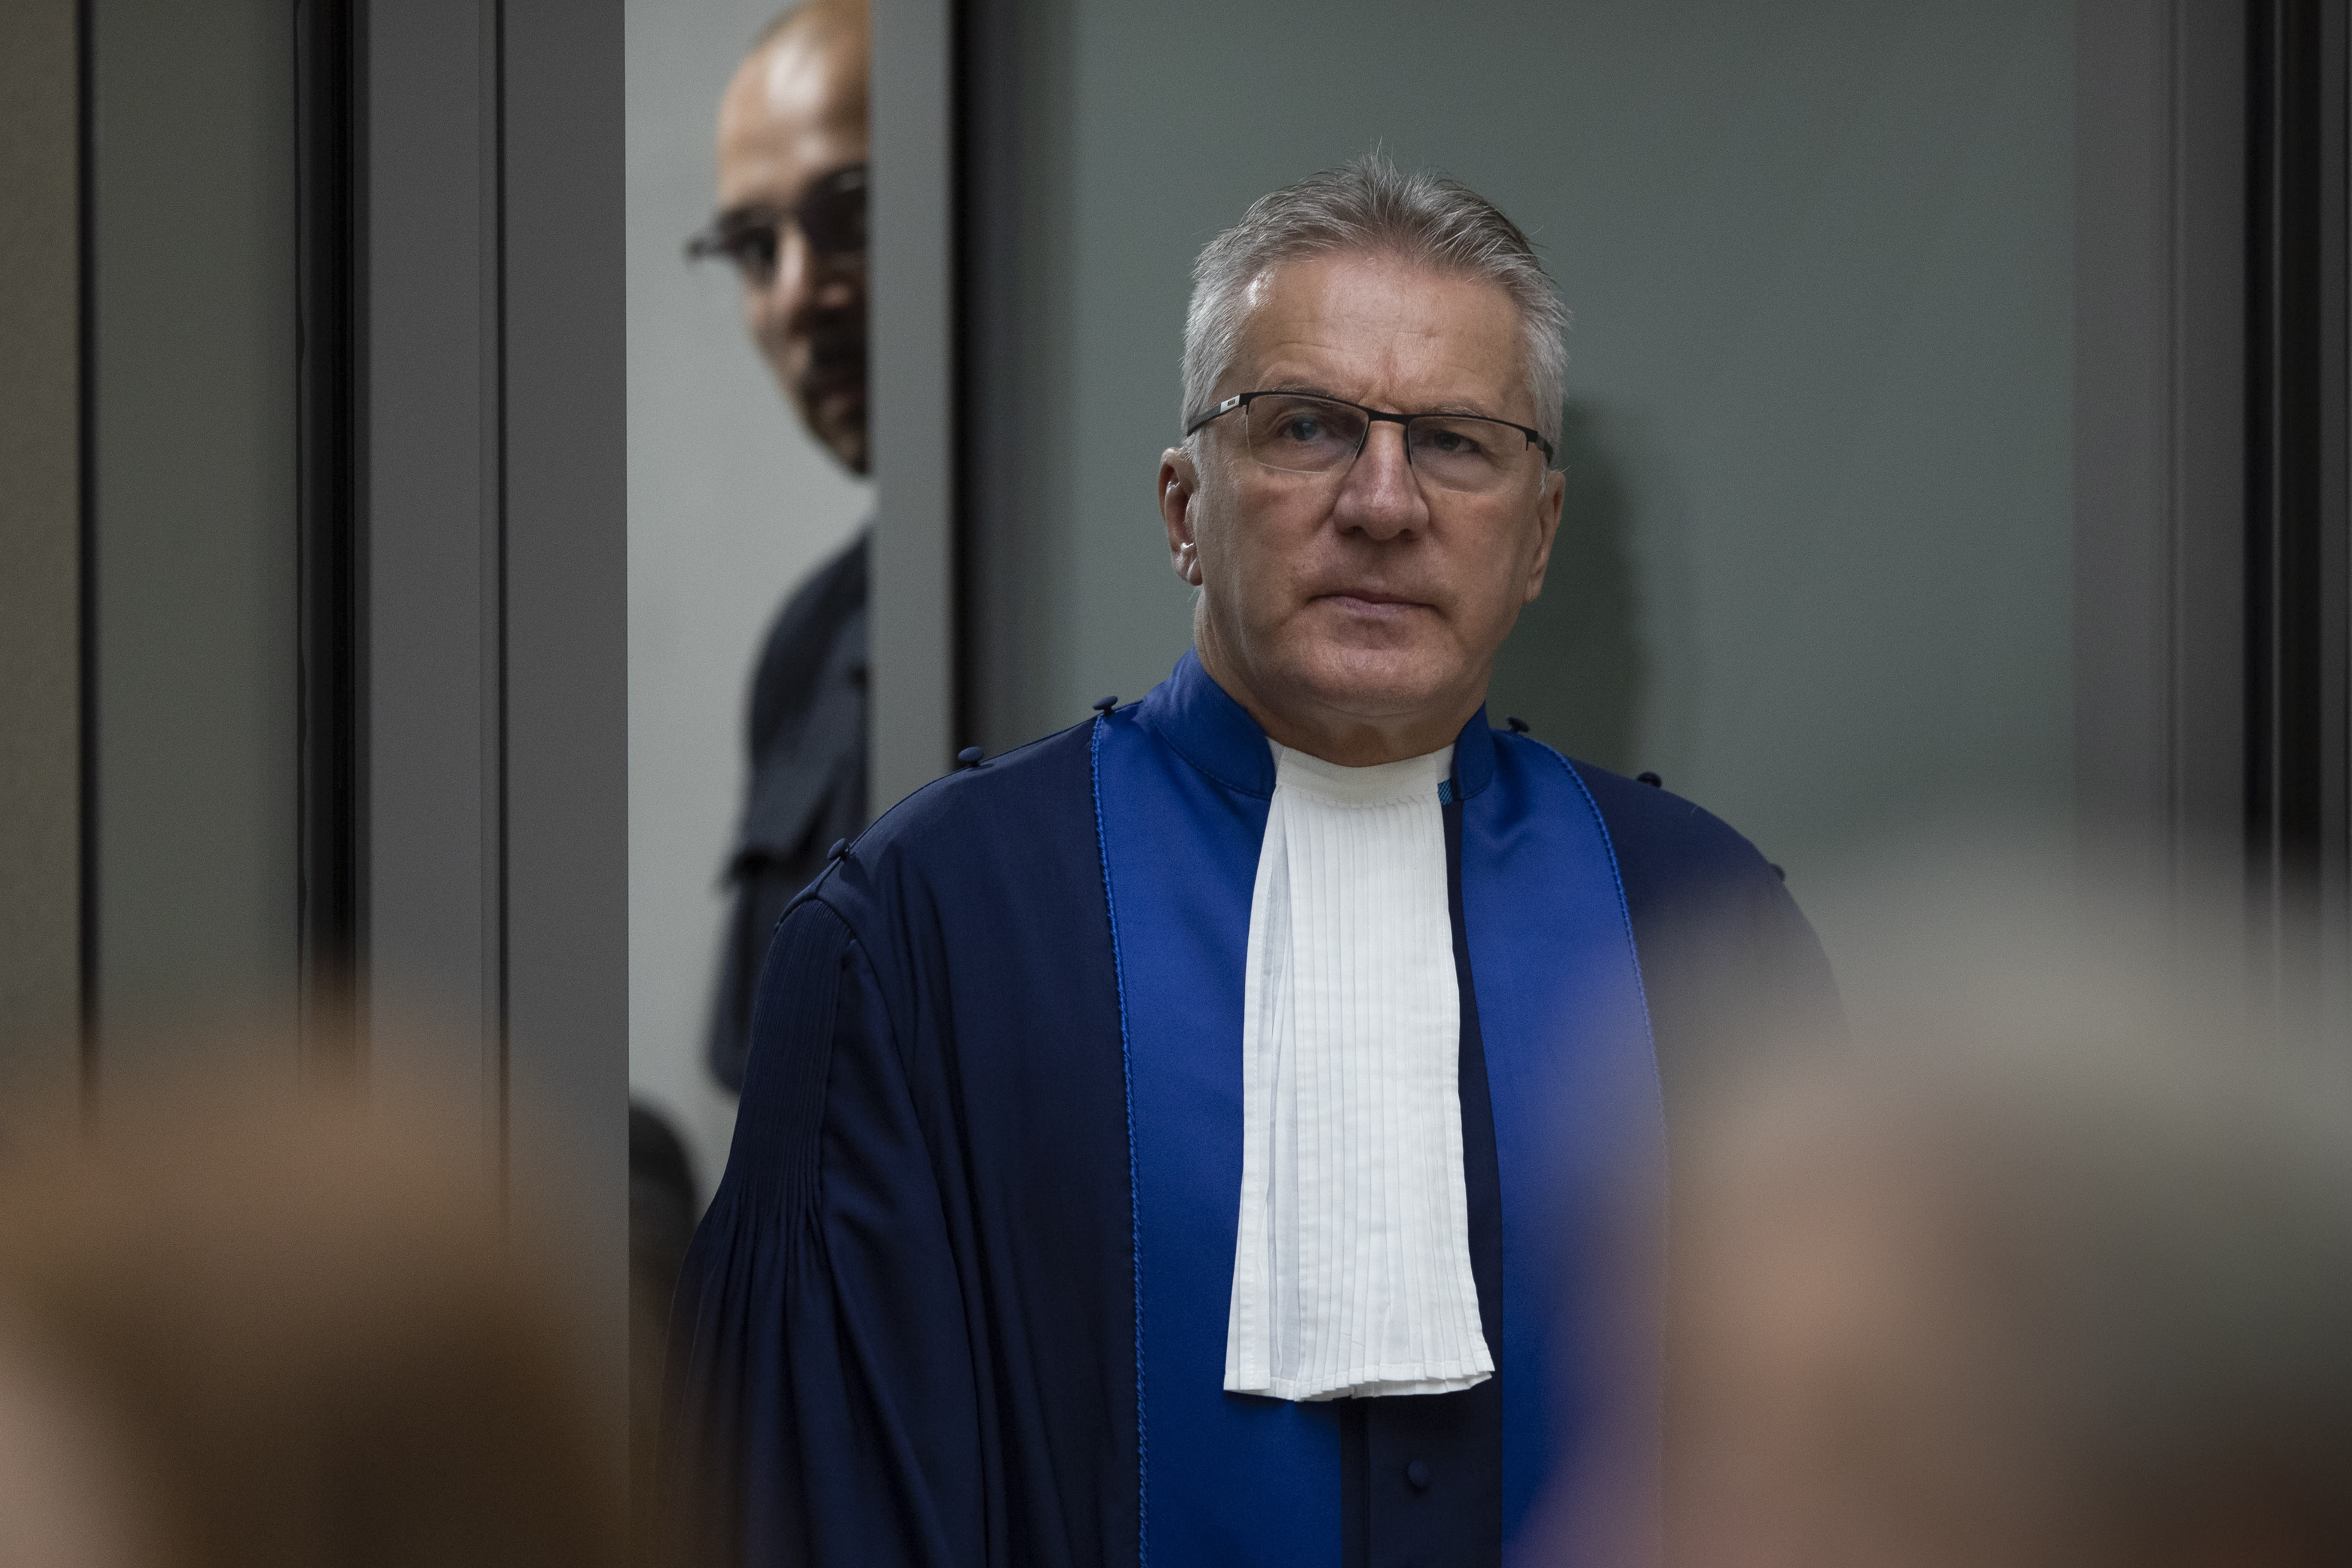 Presiding ICC judge Robert Fremr enters the courtroom to read the sentence for Congolese militia commander Bosco Ntaganda at the International Criminal Court in The Hague, Netherlands, Thursday, Nov. 7, 2019. The ICC delivered the sentence on Ntaganda, accused of overseeing the slaughter of civilians by his soldiers in the Democratic Republic of Congo in 2002 and 2003. (AP Photo/Peter Dejong, Pool)